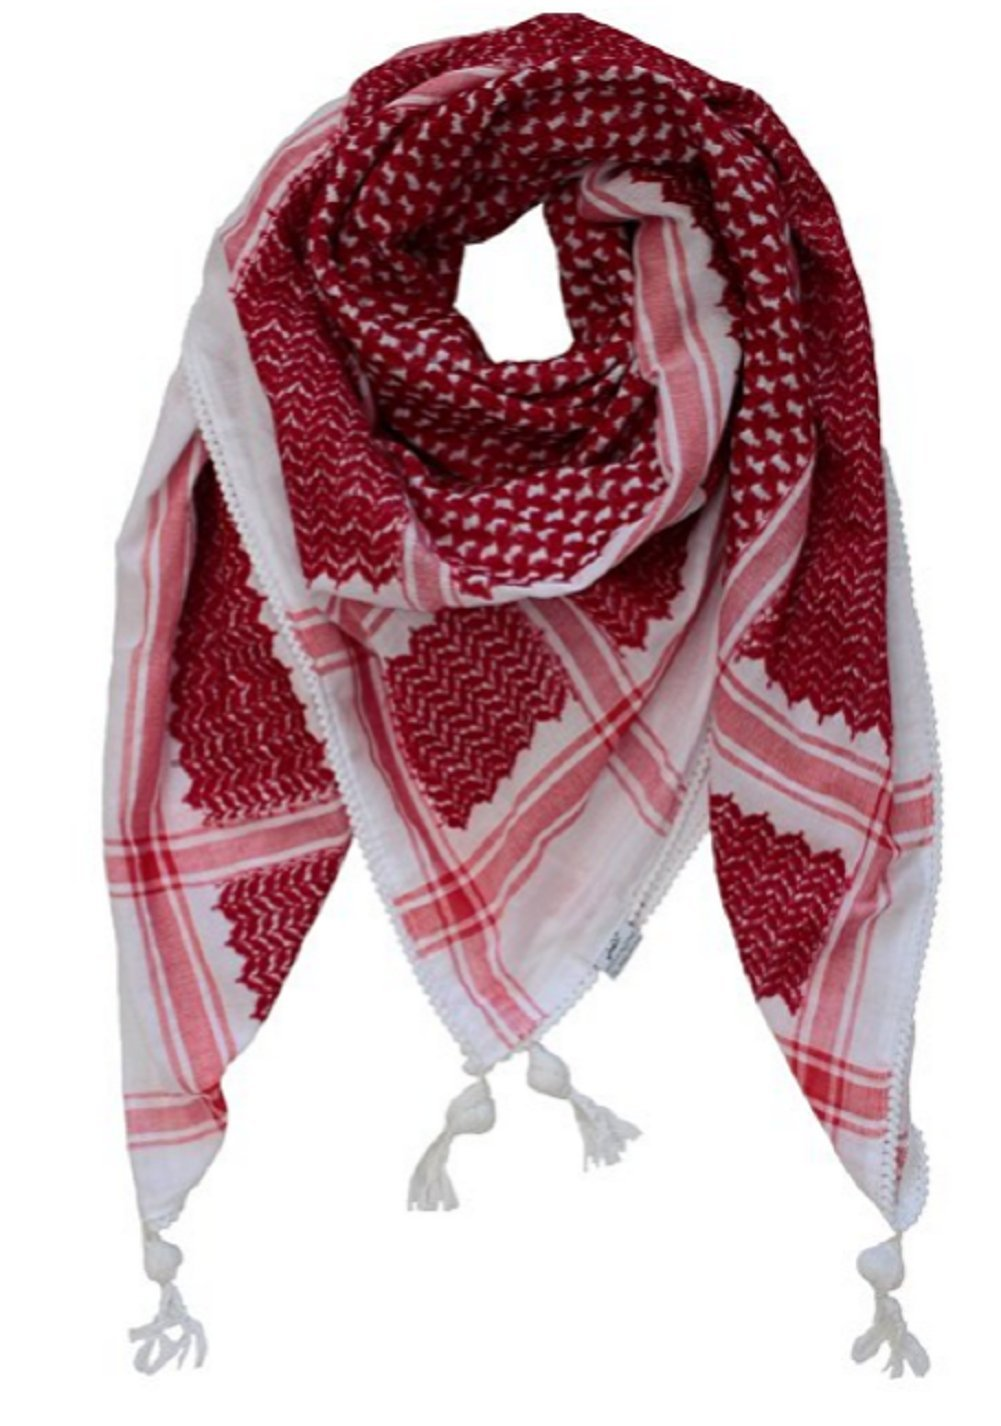 Authentic Large Middle Eastern Shemagh Arab Kafiya Keffiyeh by Bethlehem Gifts TM (Red/White)